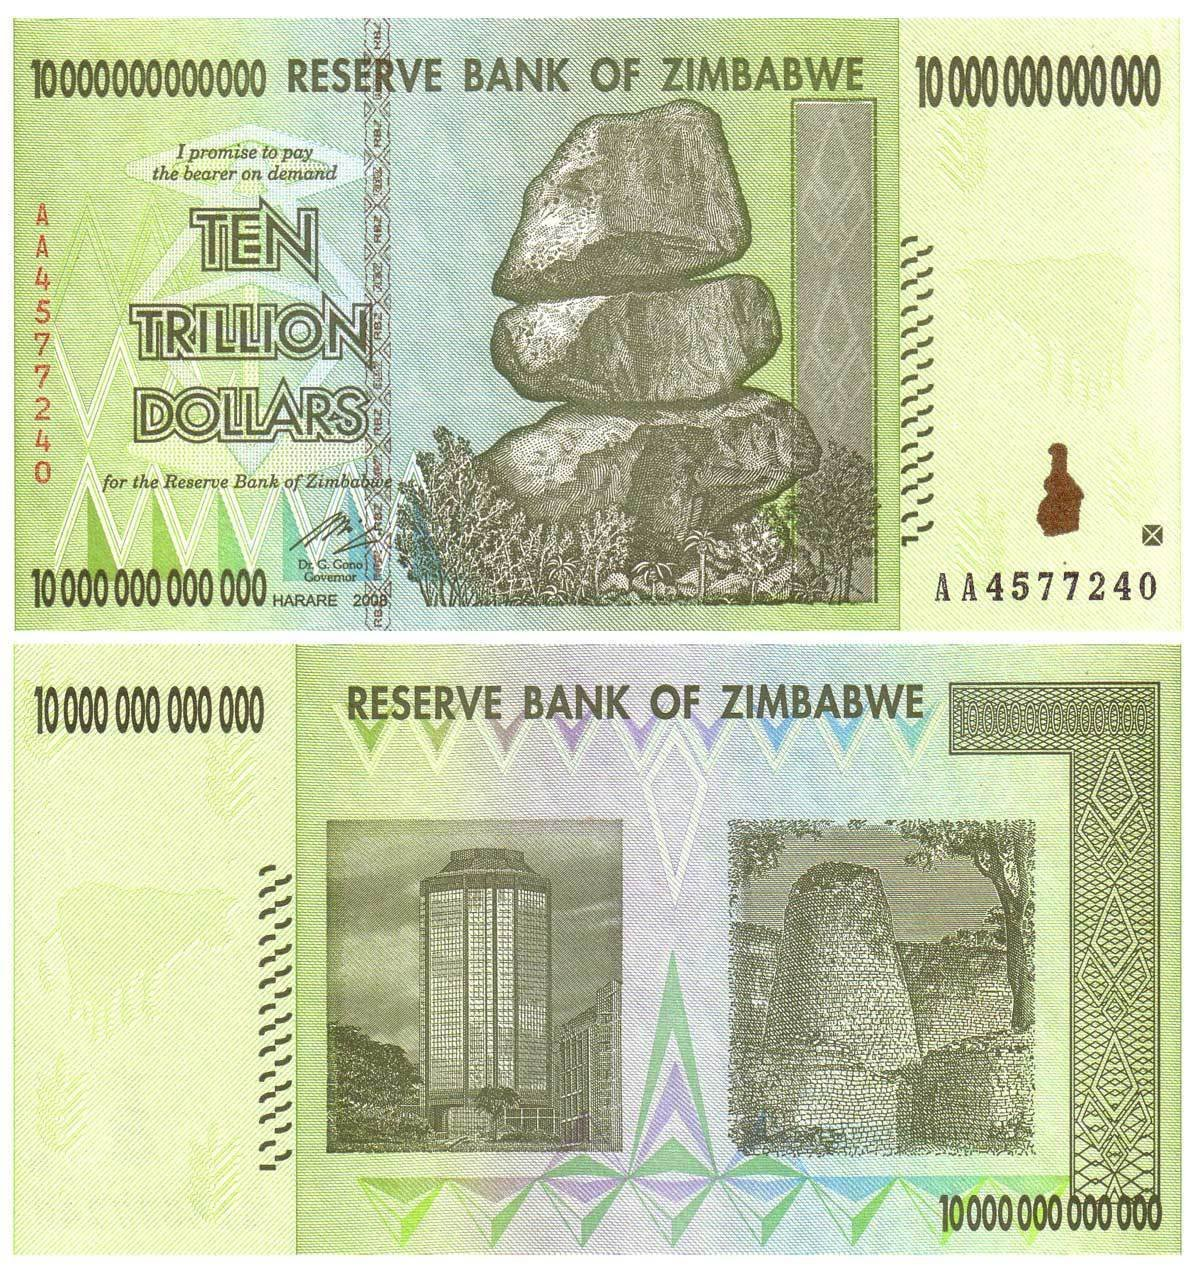 LOT OF 5 - 10 TRILLION $ ZIMBABWE NOTES BILLS MONEY UNCIRCULATED BANKNOTES - rare, limited